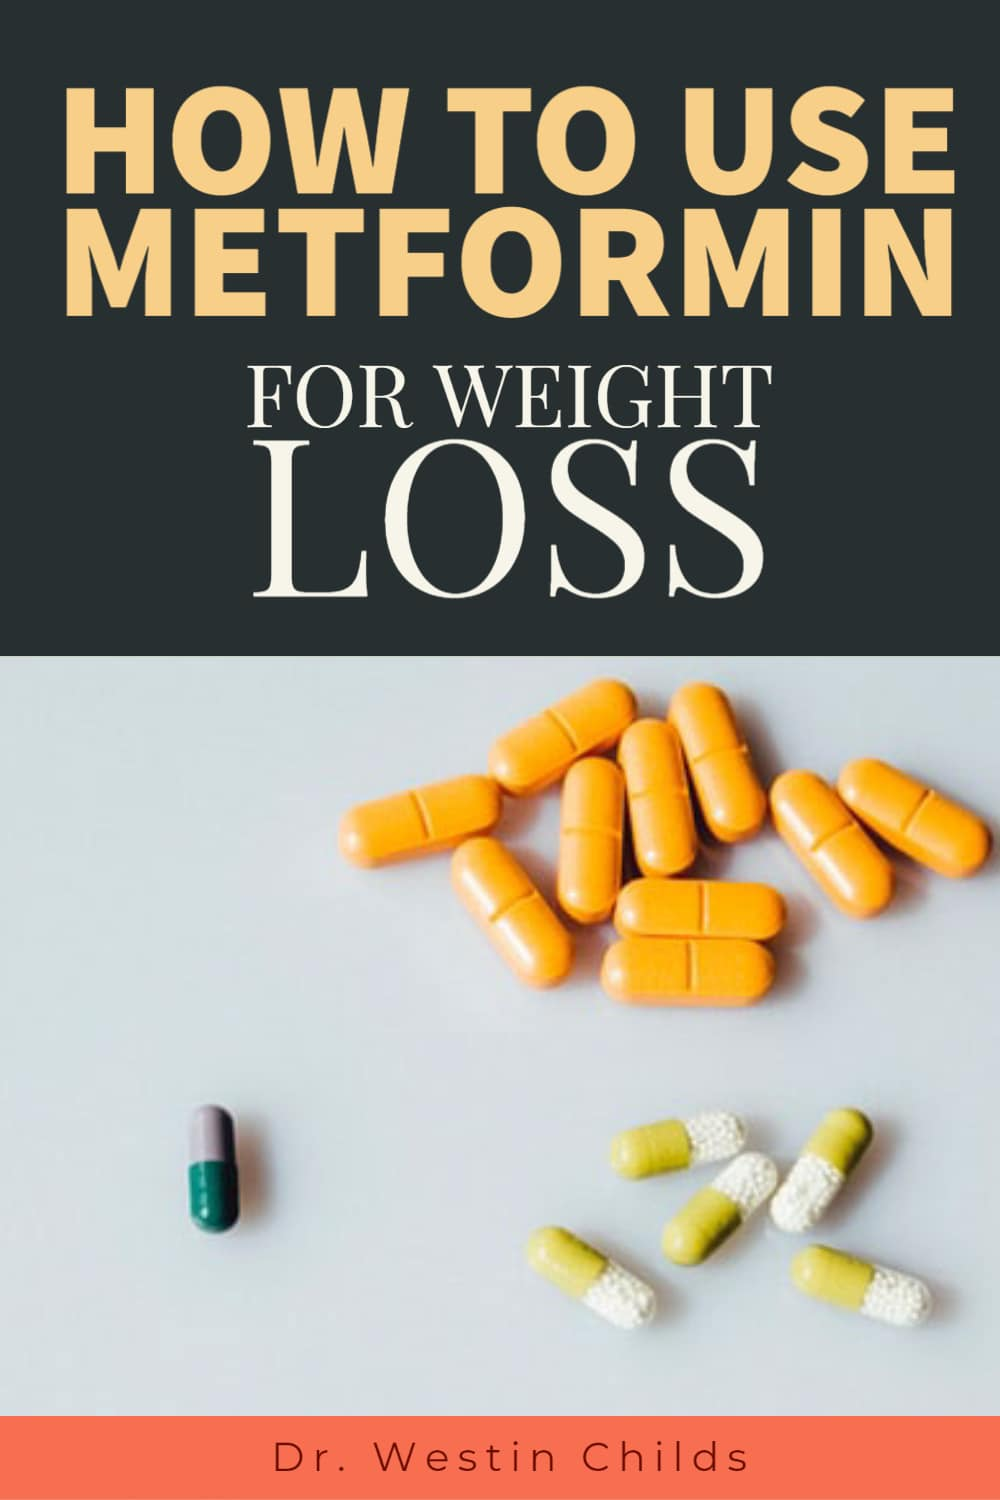 how to use metformin for weight loss